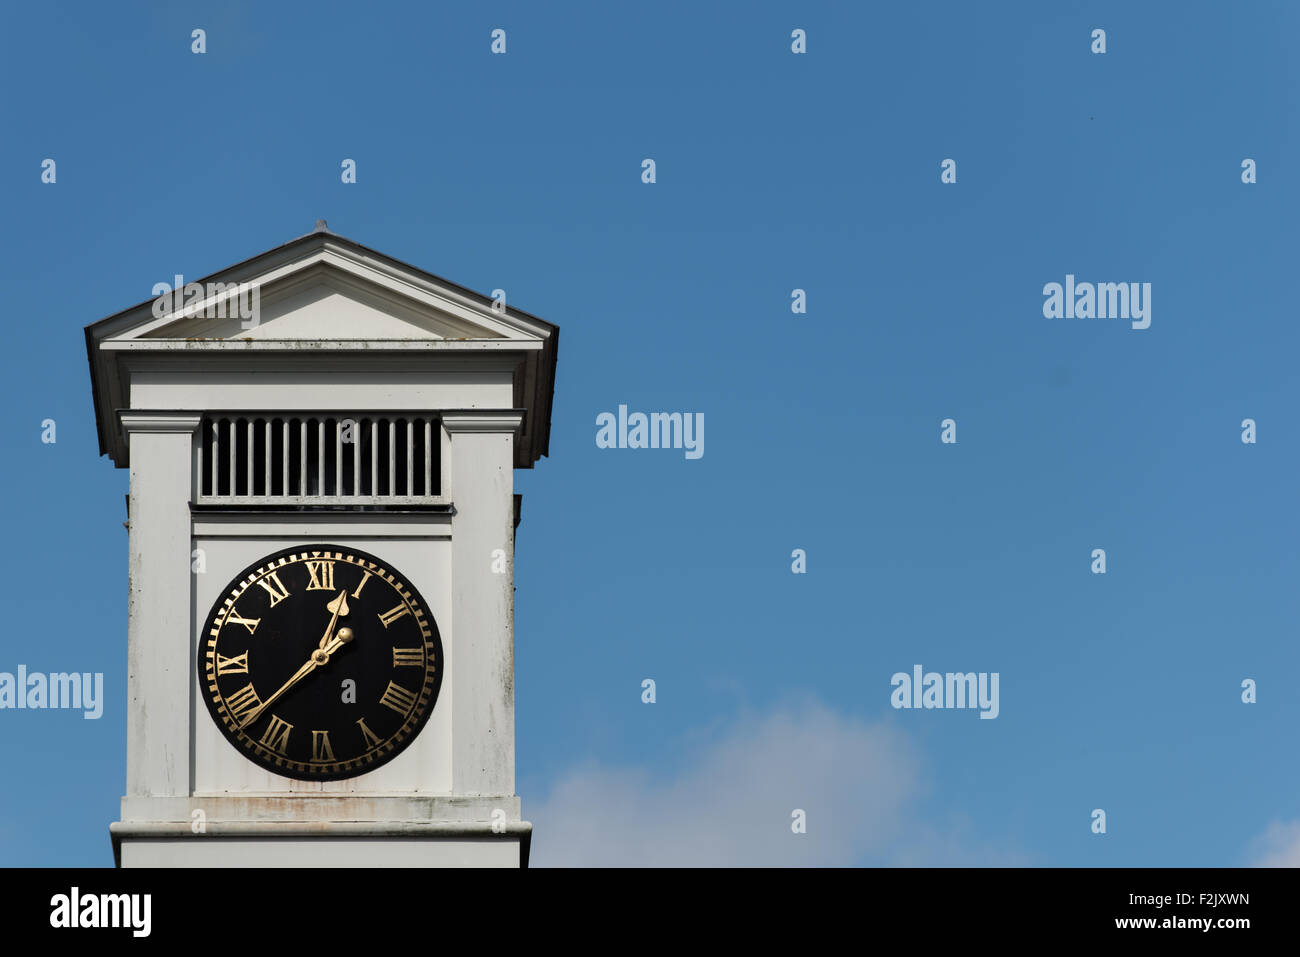 a roman numeral clock tower with a blue sky and white cloud background - Stock Image